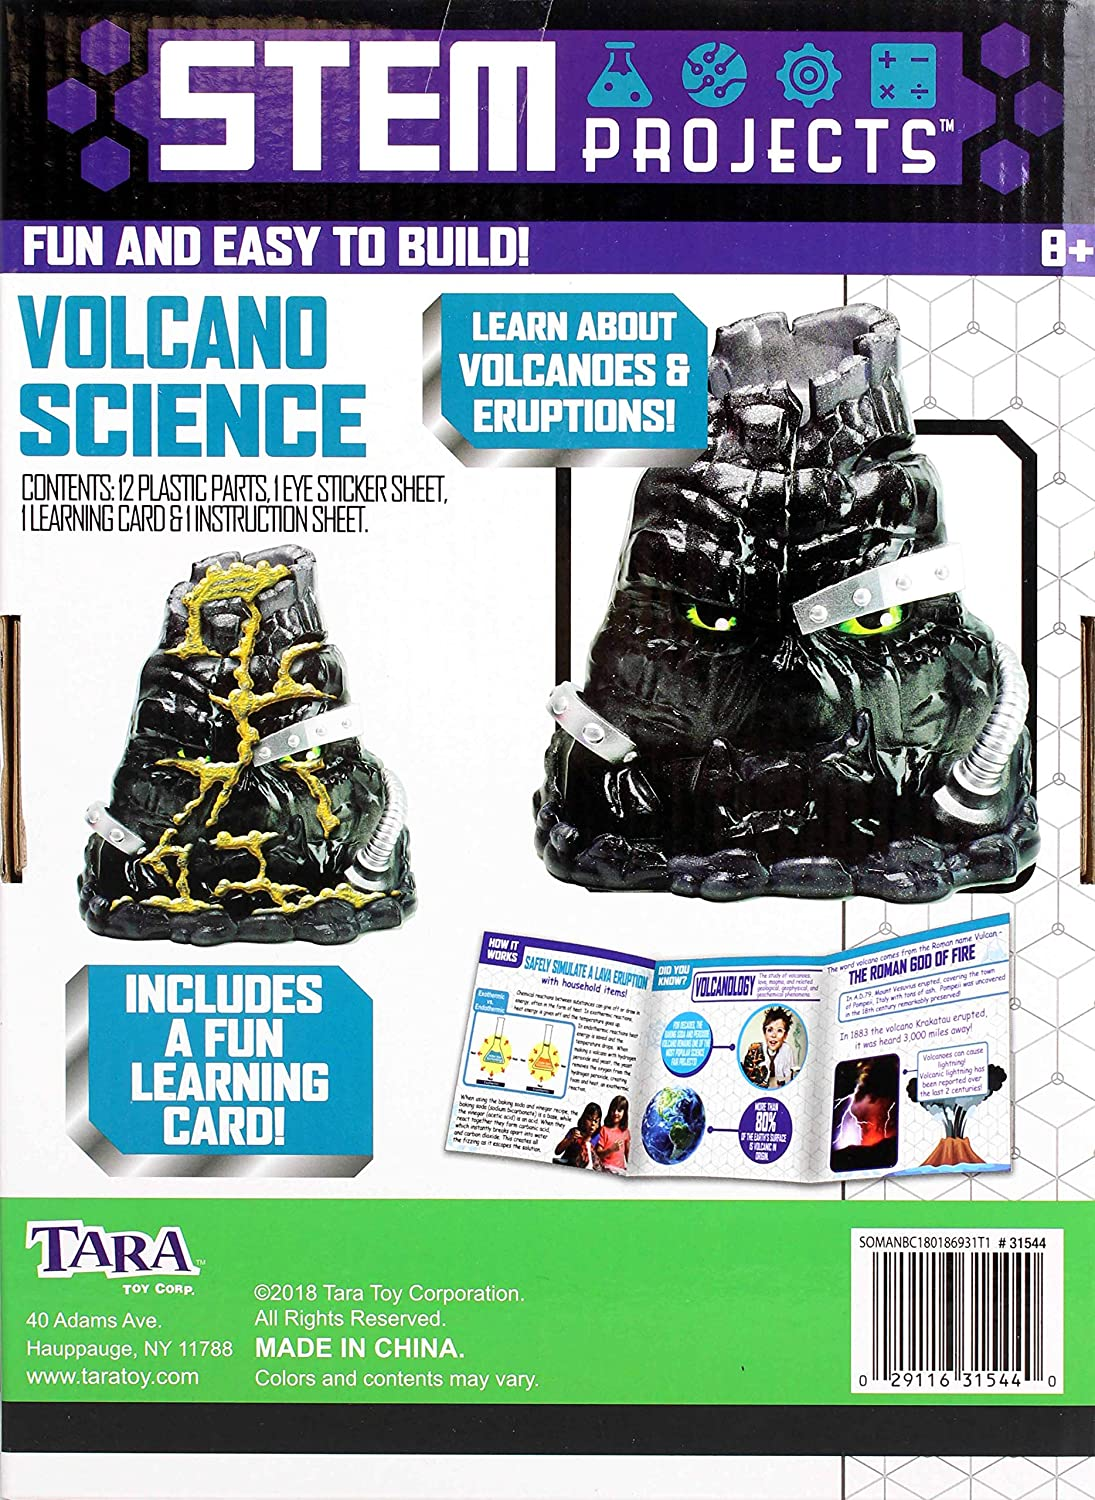 Tara Toys STEM Projects Catapult Launcher